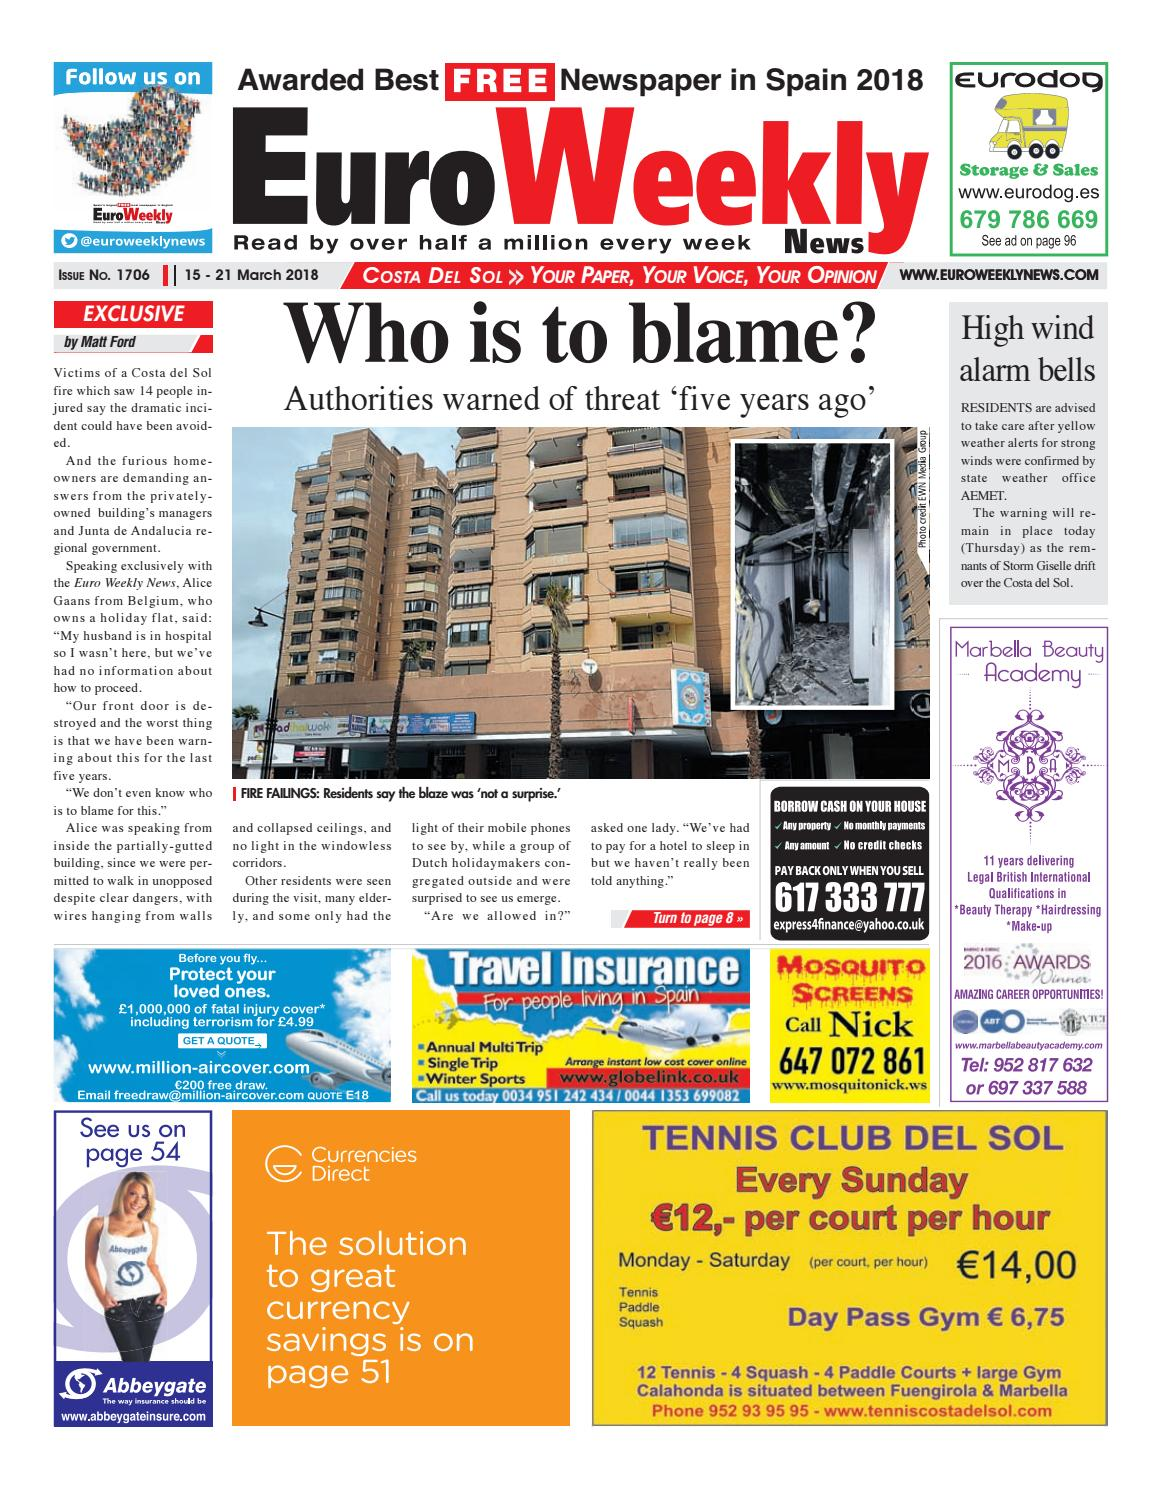 Euro weekly news costa del sol 15 21 march 2018 issue 1706 by euro weekly news costa del sol 15 21 march 2018 issue 1706 by euro weekly news media sa issuu fandeluxe Images